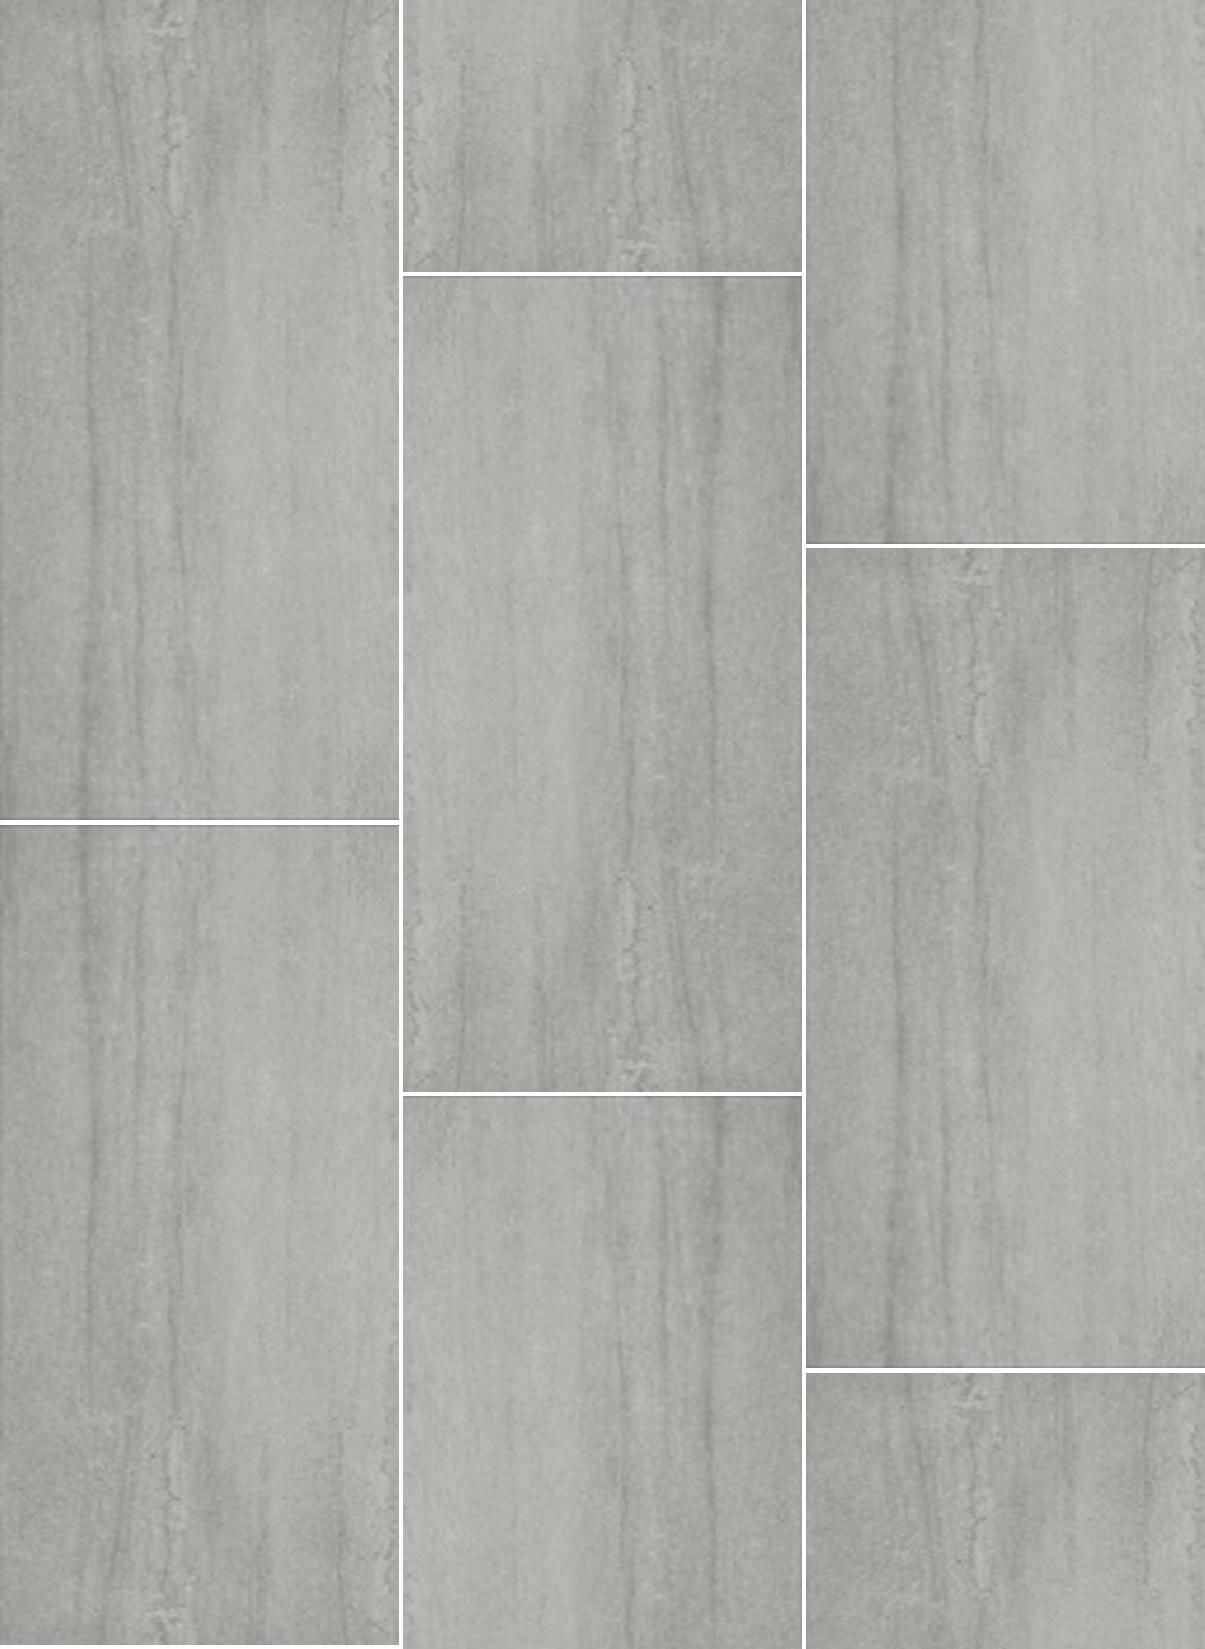 Pics for grey floor tiles texture kitchen pinterest for Grey kitchen floor tiles ideas